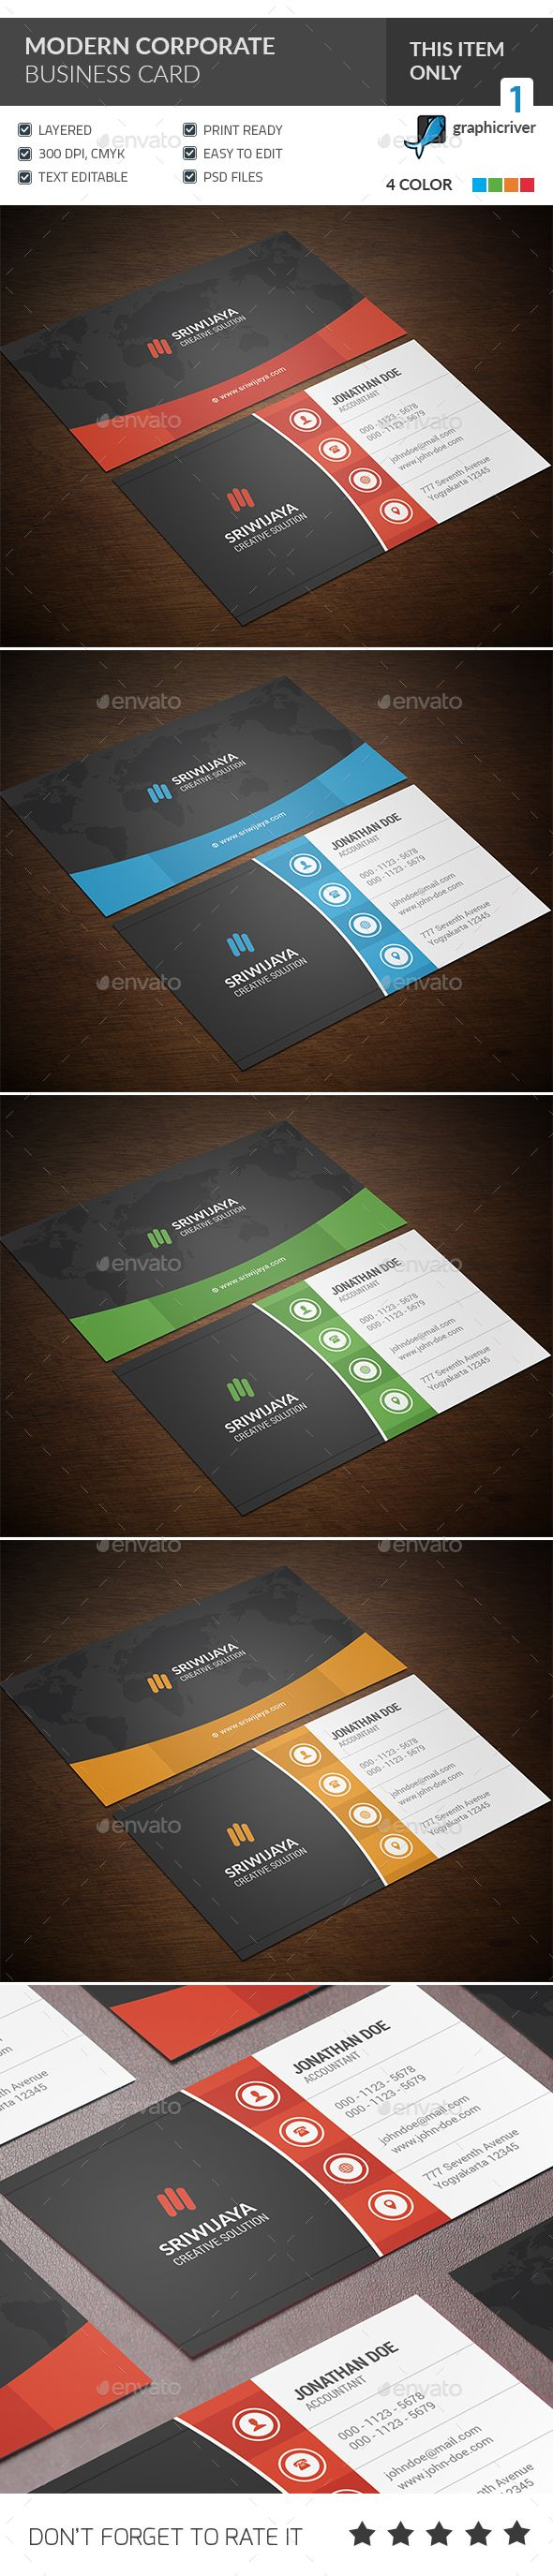 1000 Best Best Business Cards On Pinterest Images On Pinterest